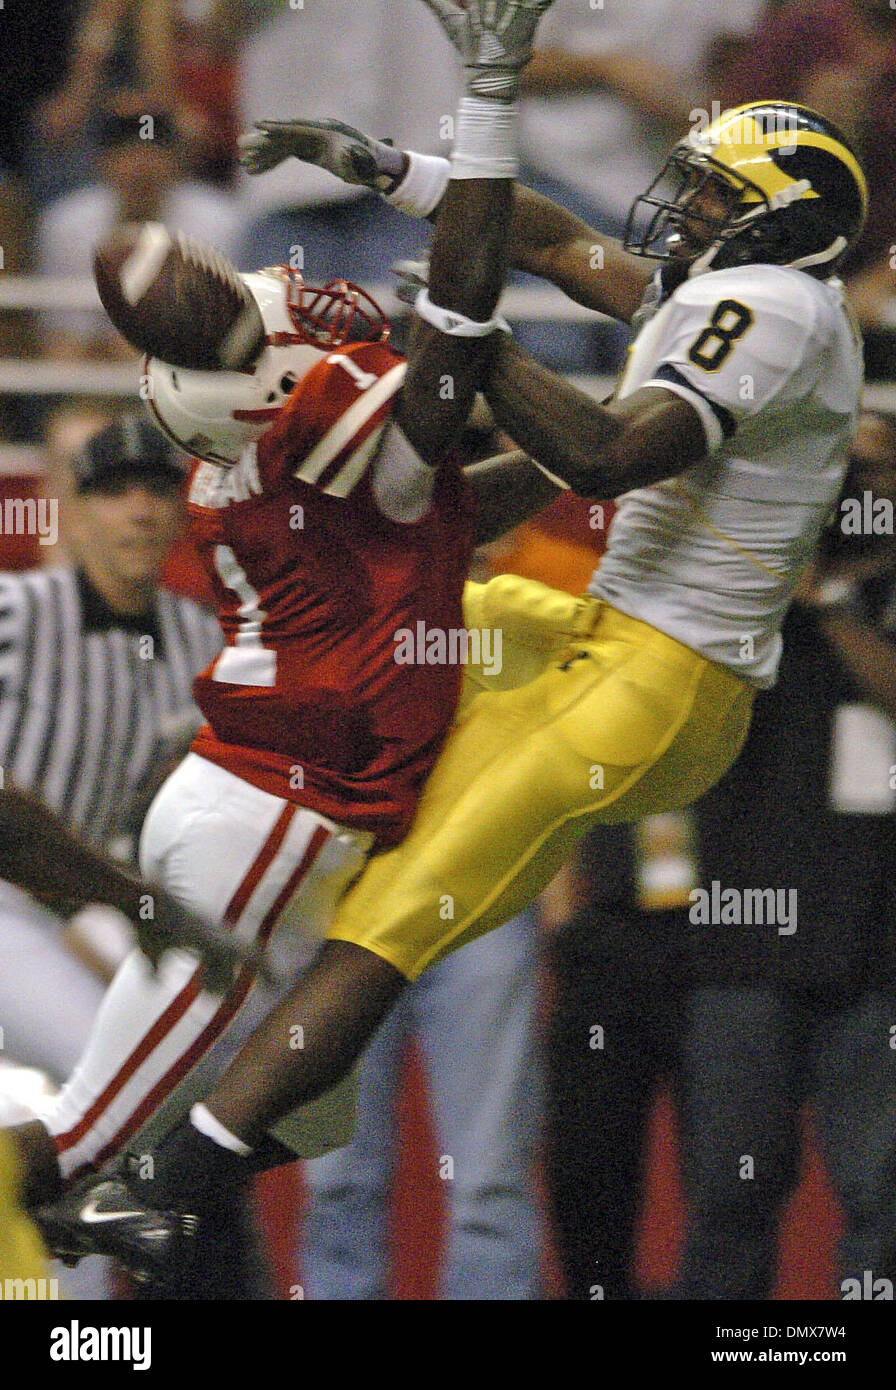 Nebraska Football Roster High Resolution Stock Photography And Images Alamy